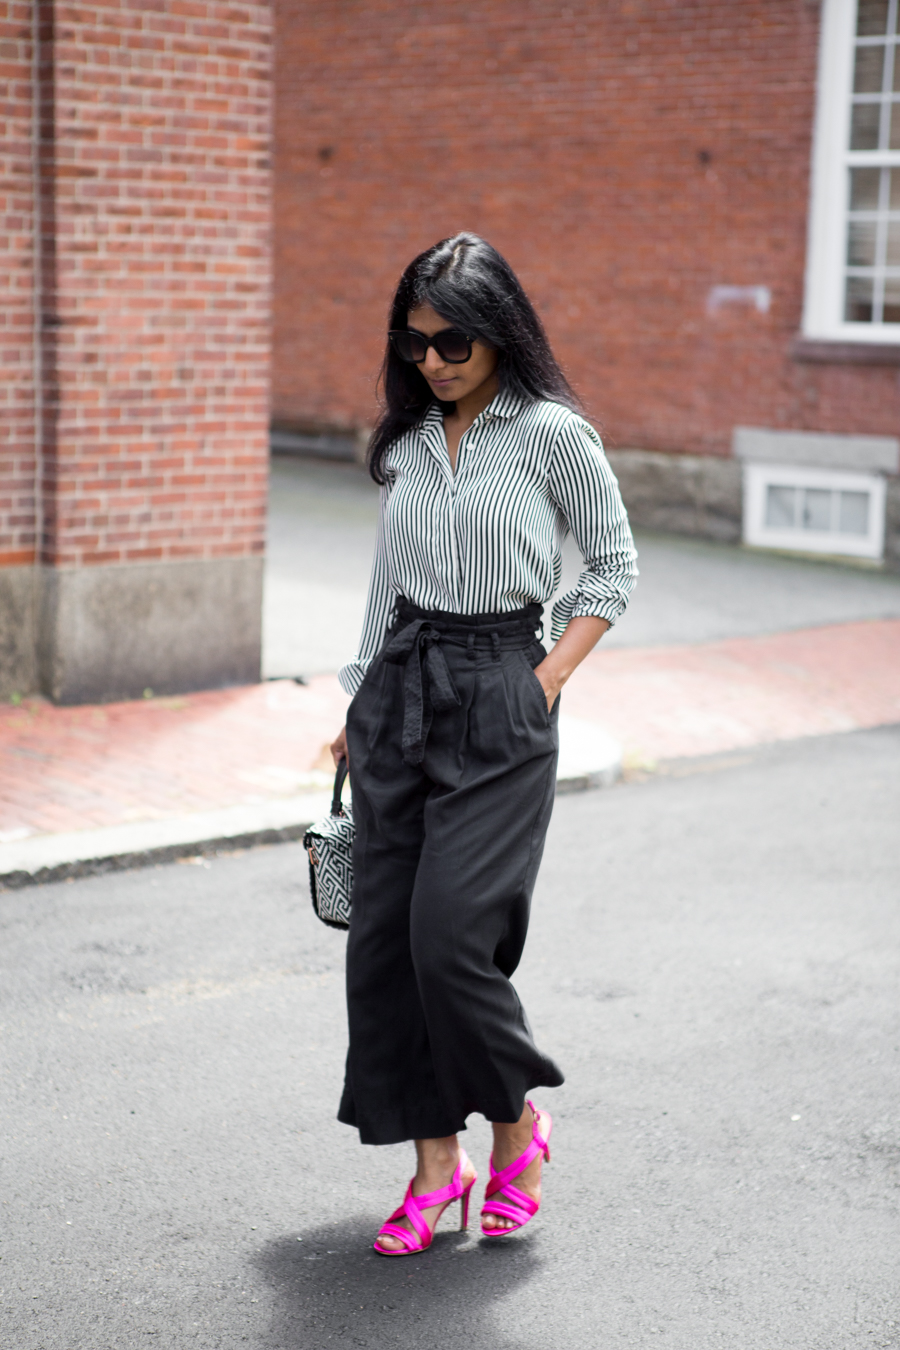 nordstrom anniversary sale, paper bag pants, culottes, palazzo pants, summer style, summer pants, work style, work outfit, business casual, satin sandals, ted baker, zara, nordstrom, affordable style, petite blogger, fashion blog, 40plusstyle, trendy, neutrals, officestyle